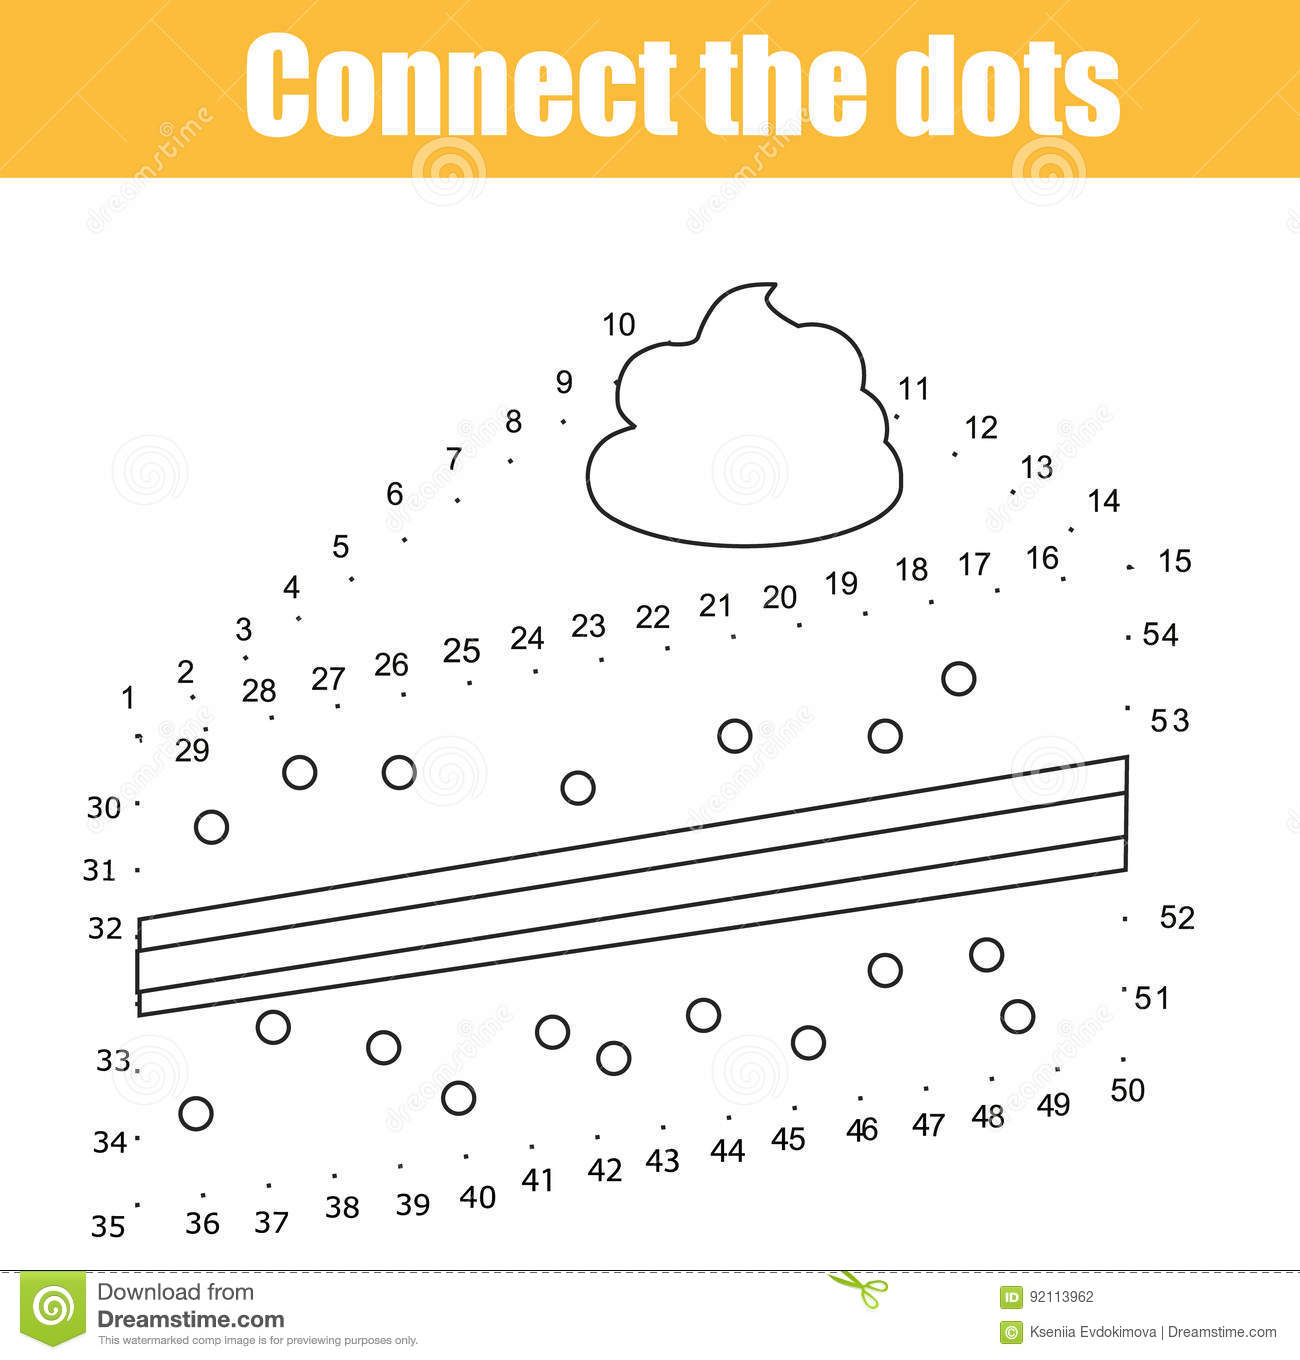 graphic relating to Connect the Dots Game Printable called Talk The Dots By means of Figures Small children Insightful Recreation